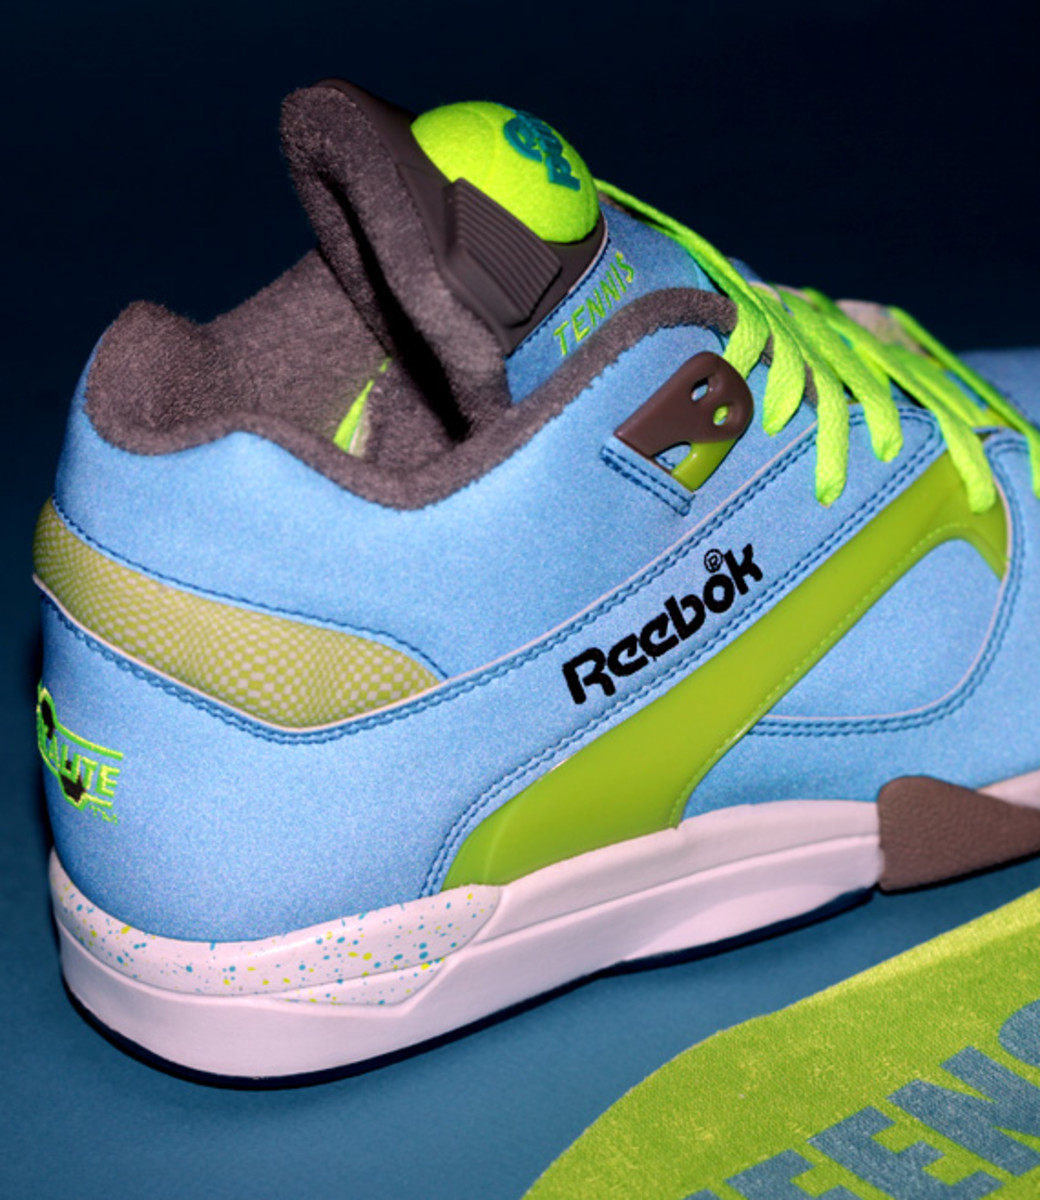 packer-shoes-reebok-court-victory-pump-us-open-14